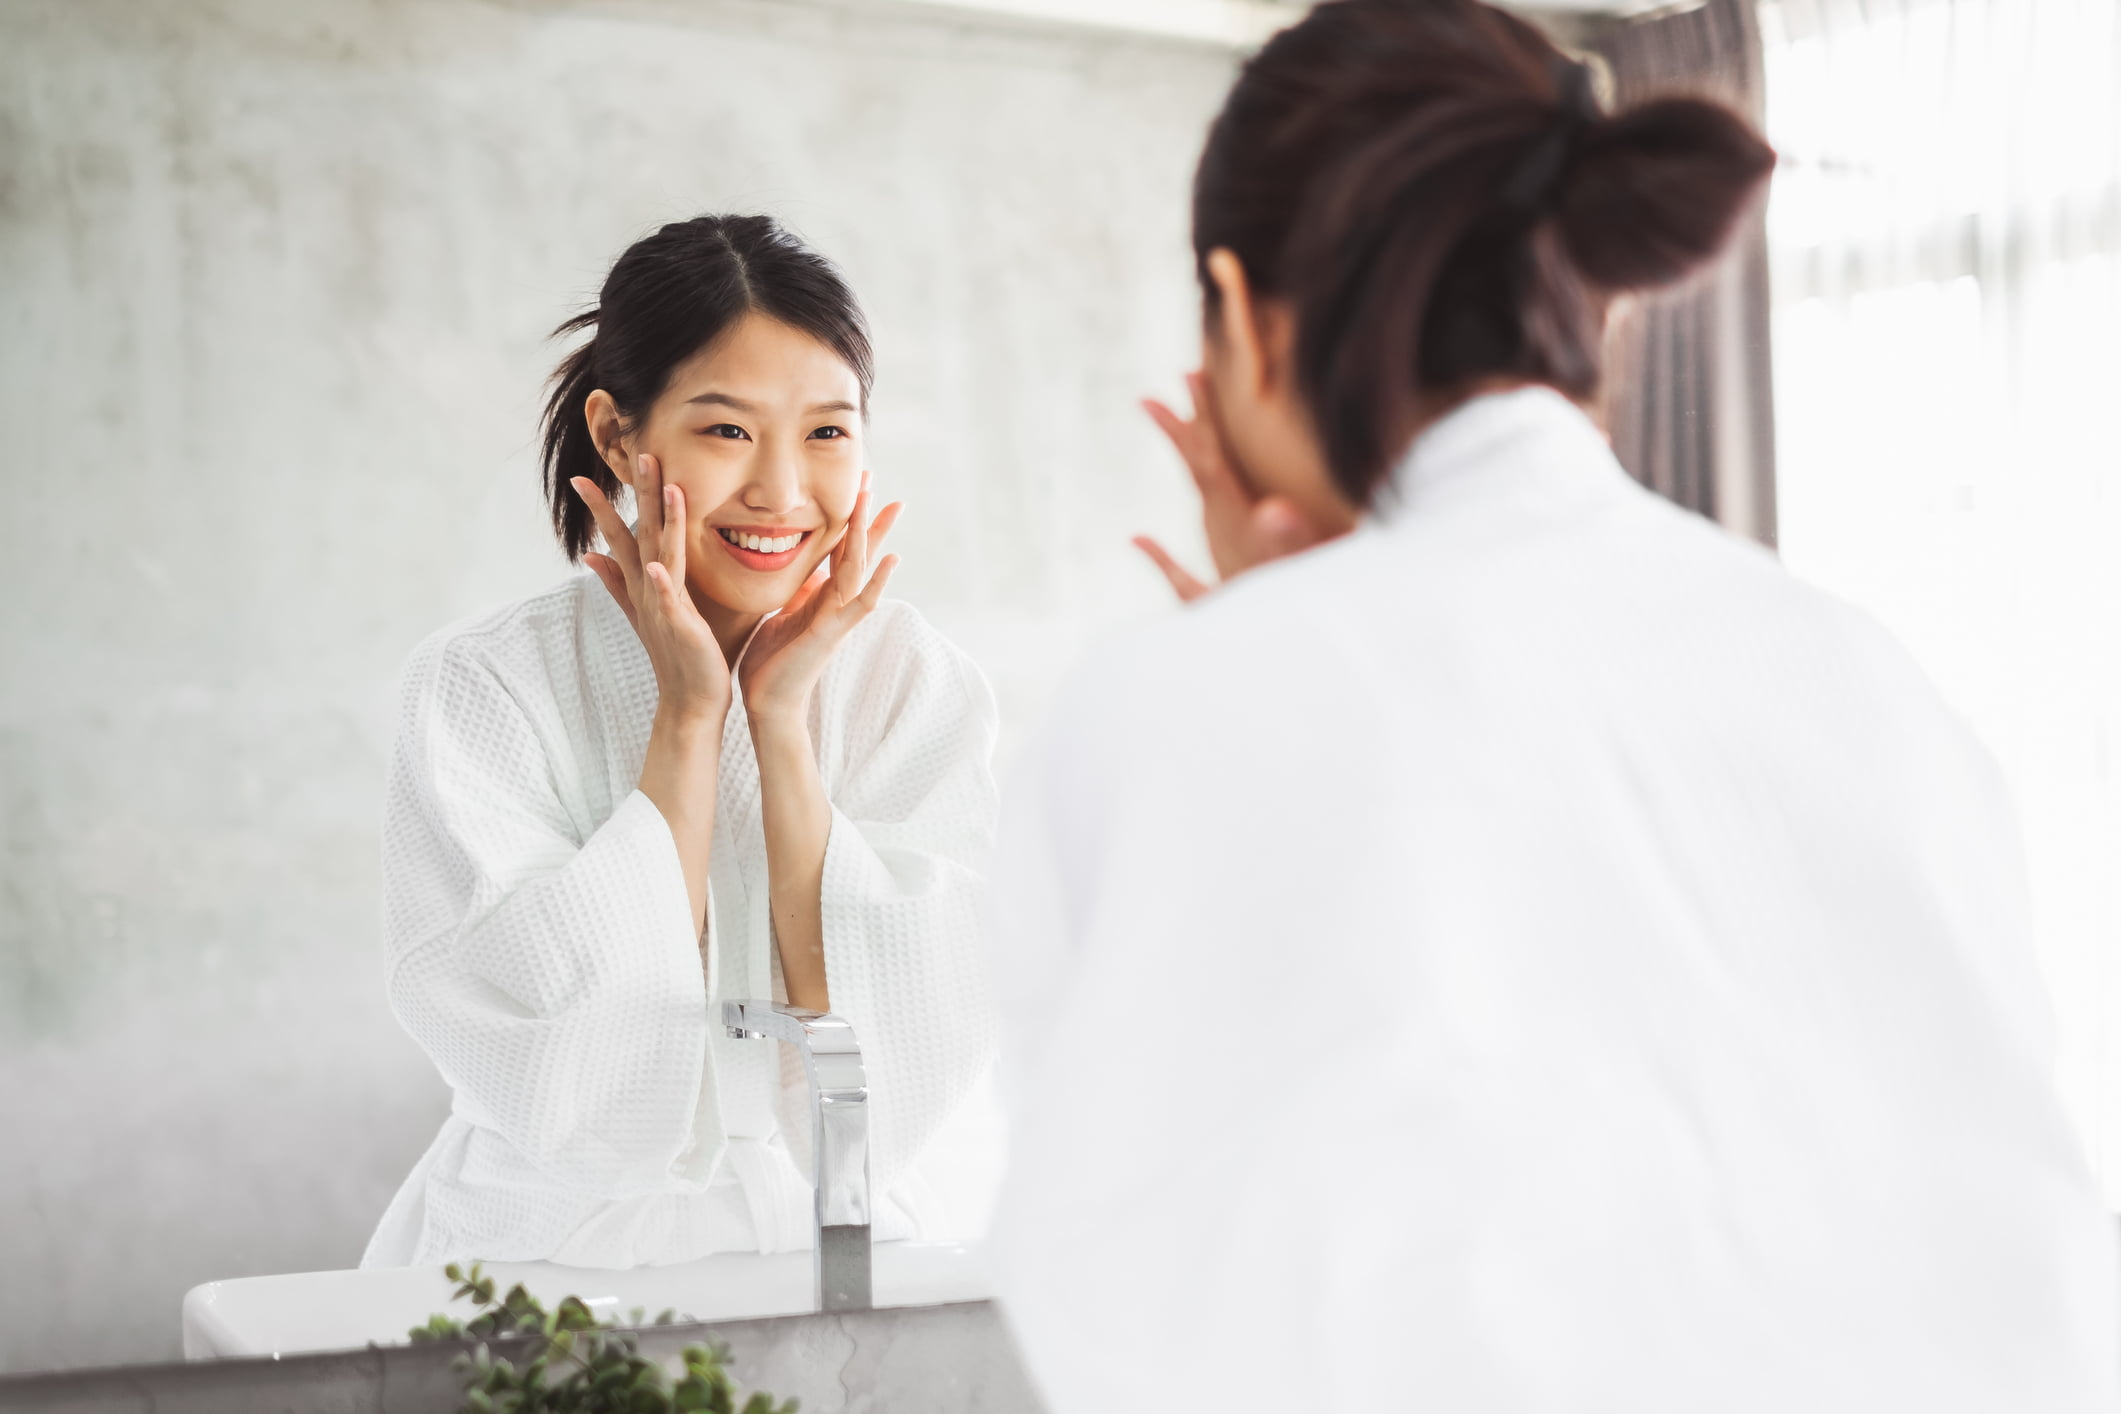 An Asian lady is looking at the mirror and applying skincare product